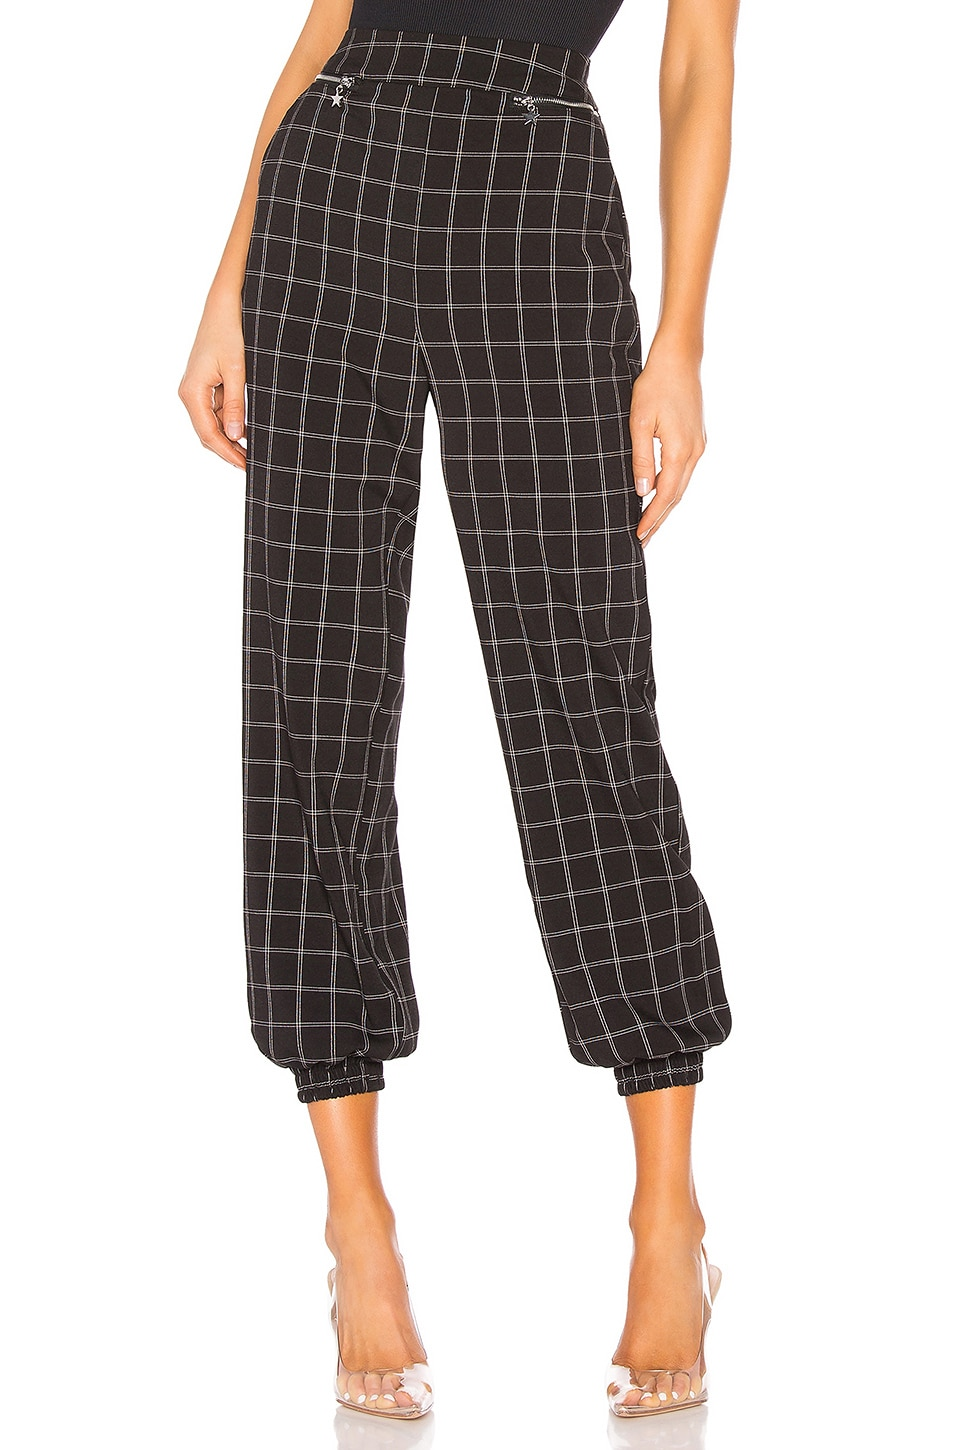 h:ours Regina Pant in Black & White